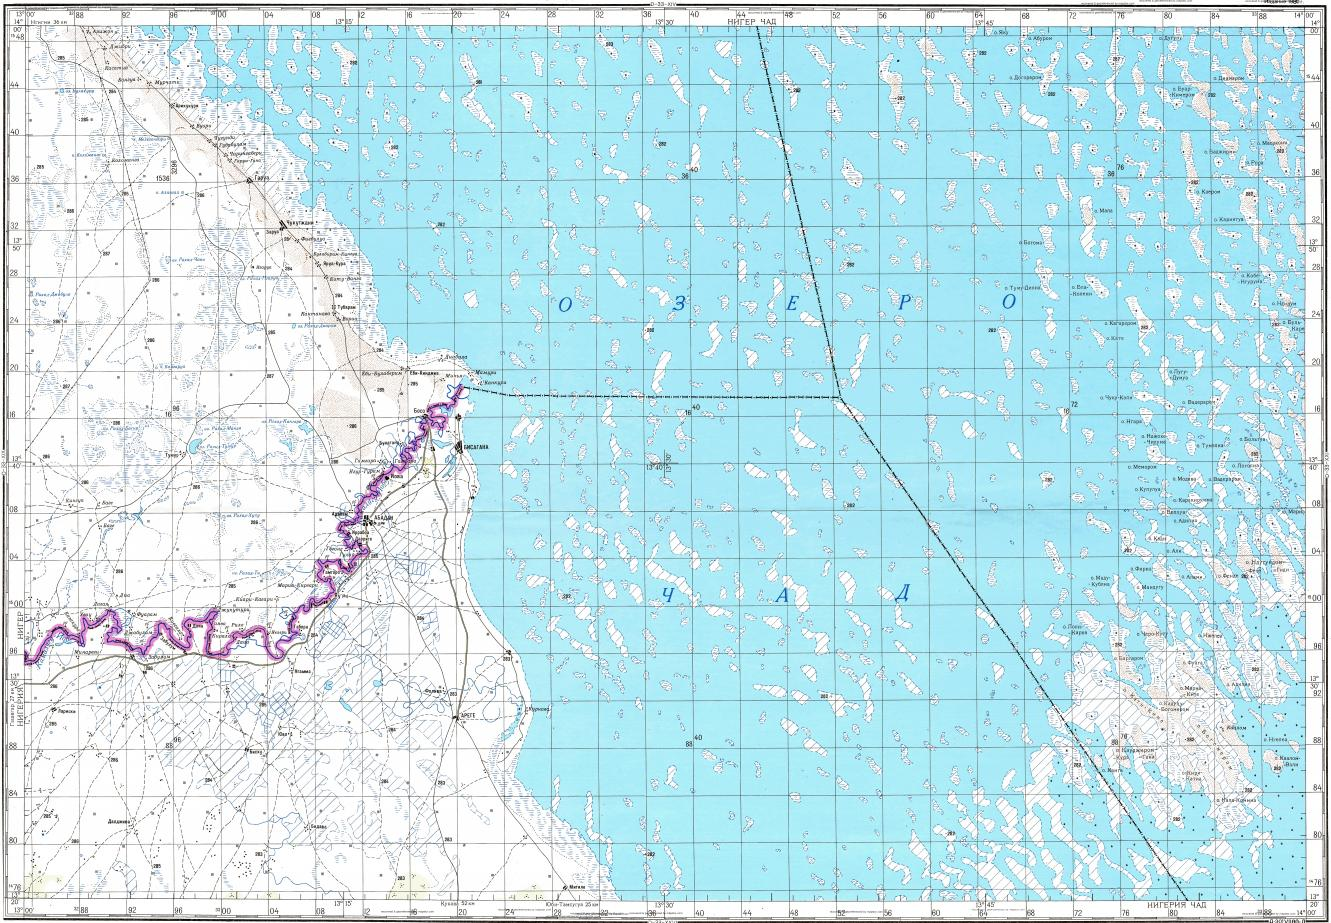 Download topographic map in area of Garoua mapstorcom